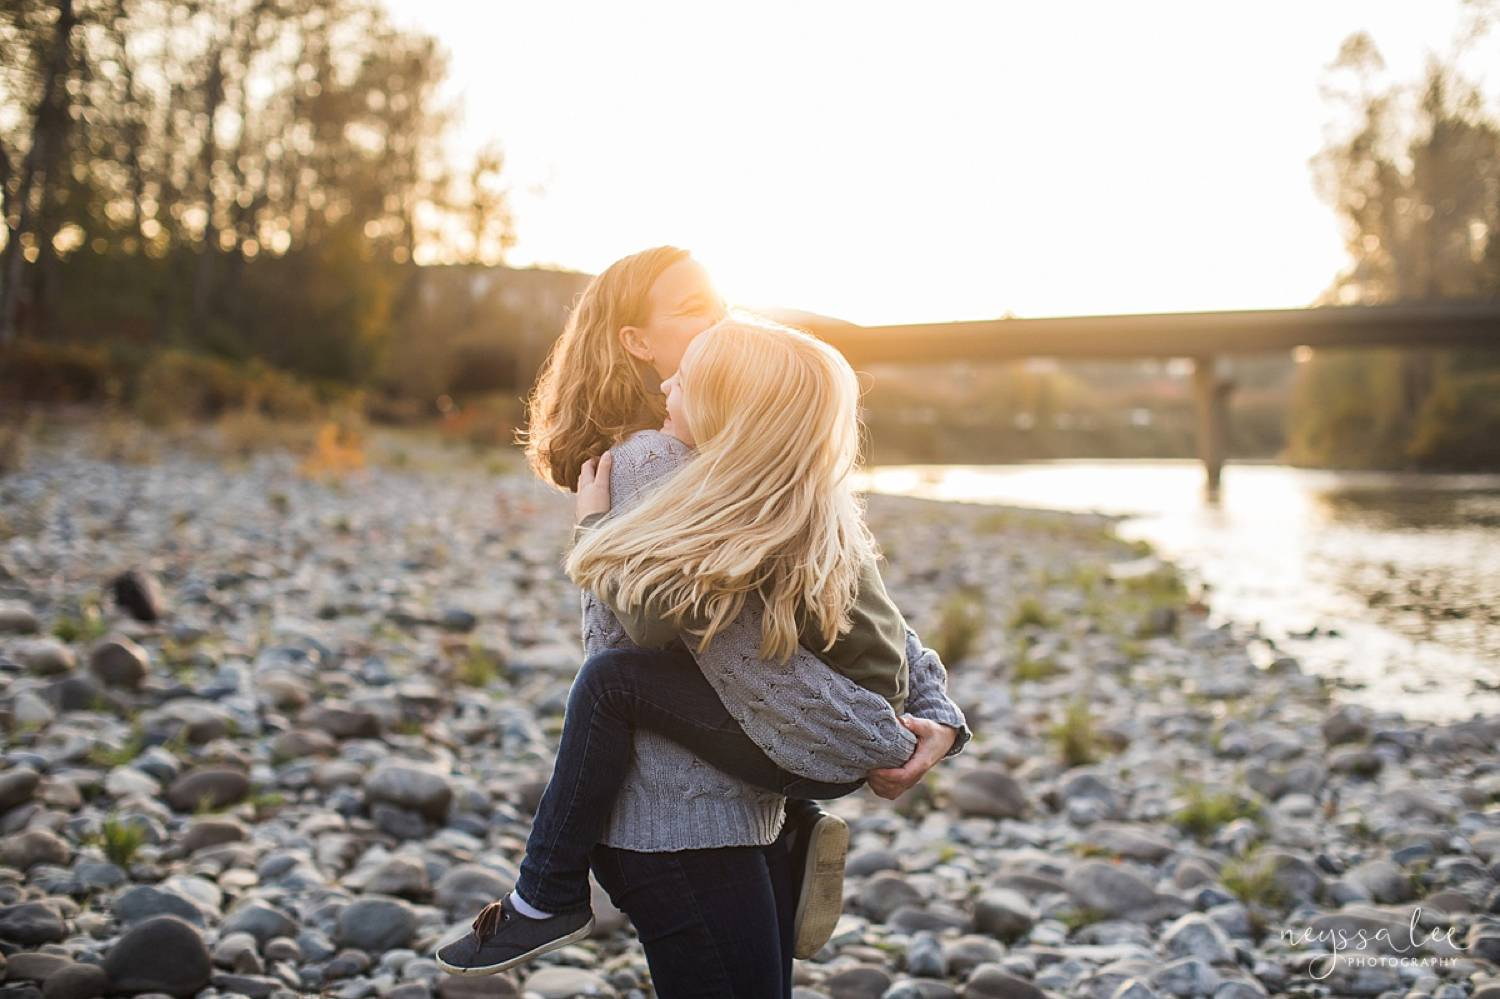 a mom spins her young daughter in her arms on a beach at sunset